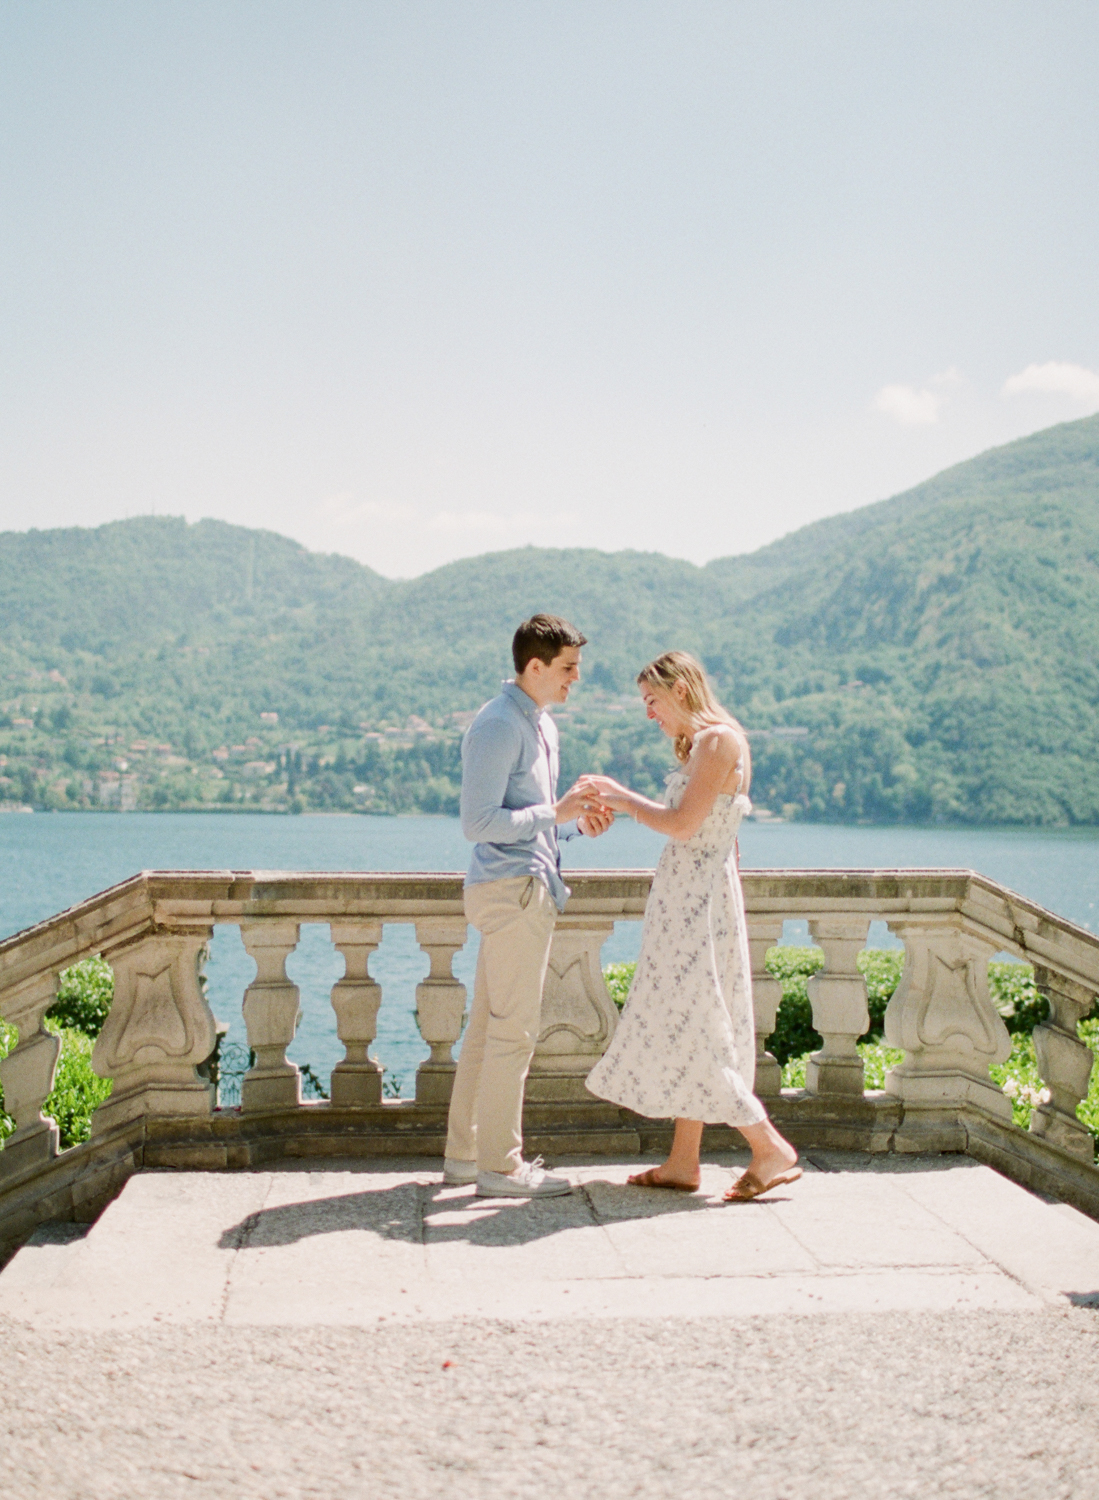 lake como film wedding photographer italy wedding photographer nikol bodnarova photography 21.JPG